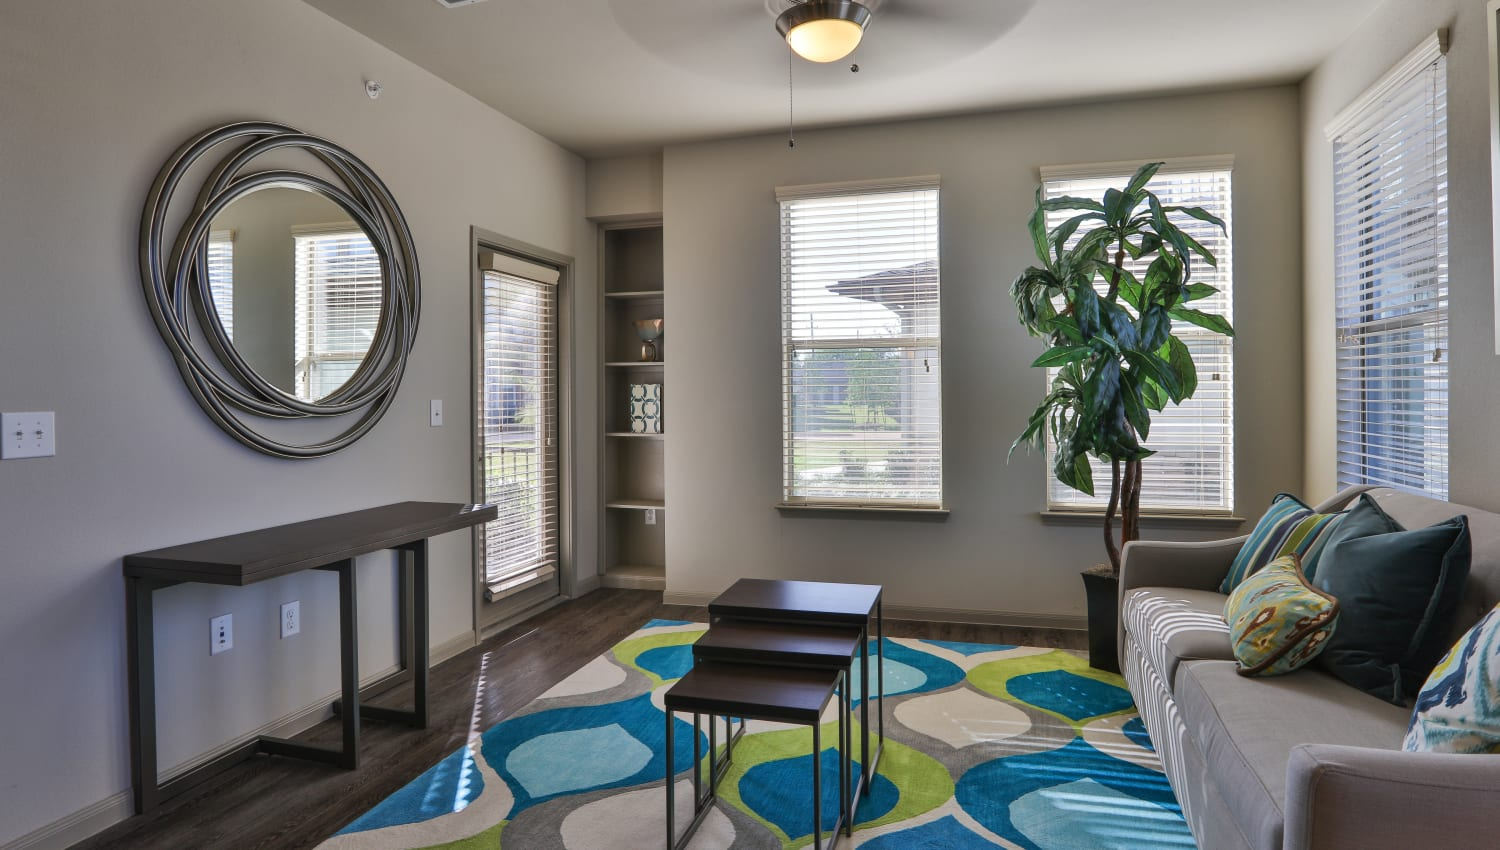 Living room with mirror and plants at Olympus at Waterside Estates in Richmond, Texas